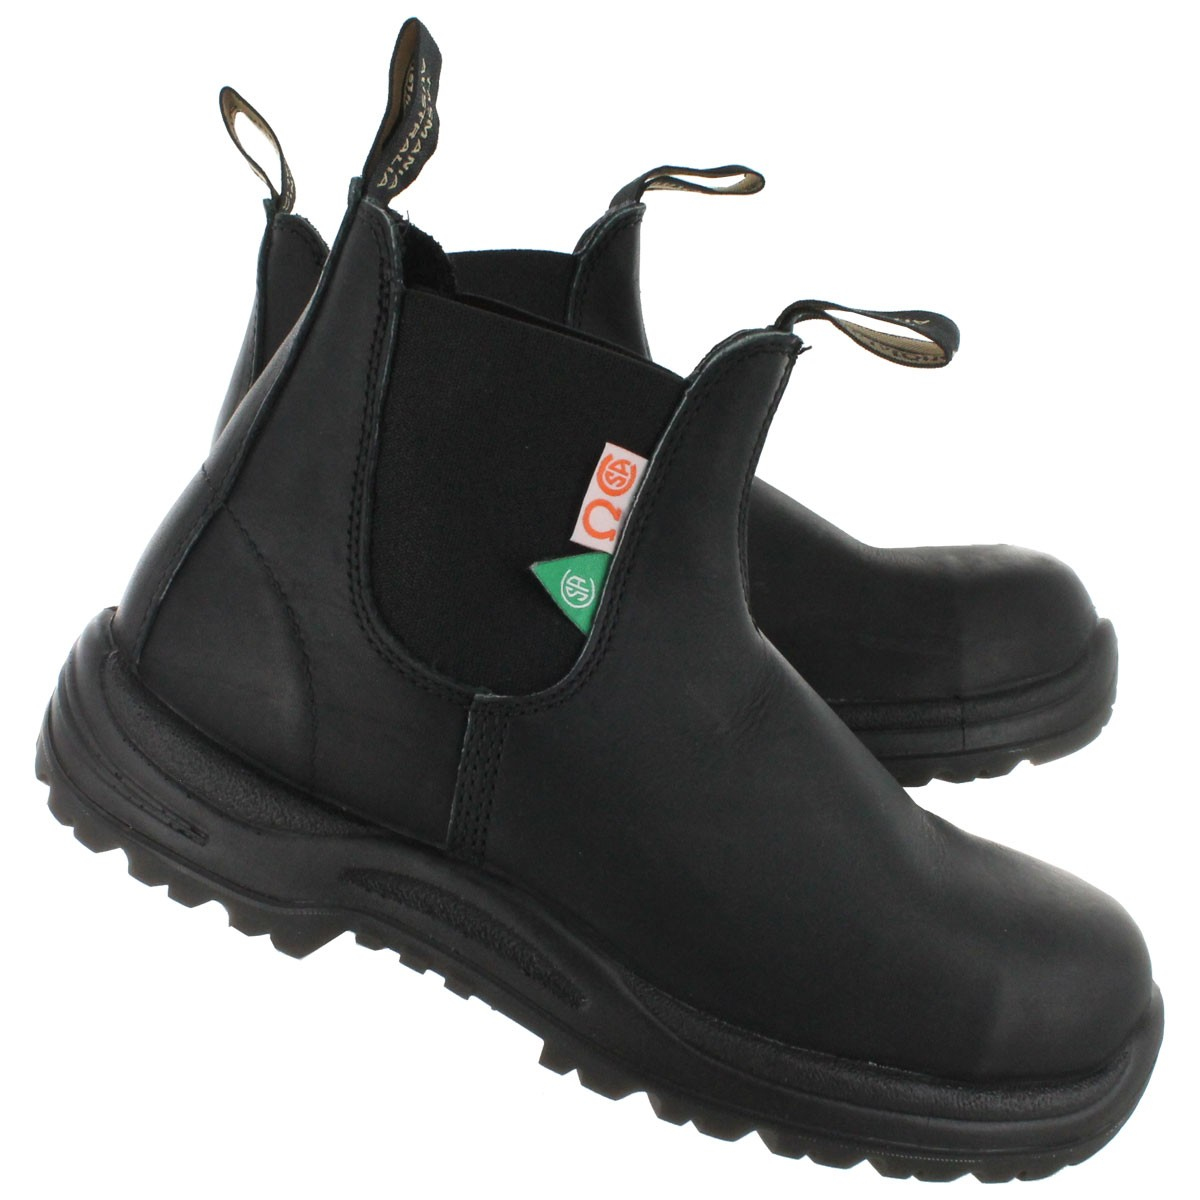 Blundstone 163 Csa Greenpatch Boot Canada Online Best